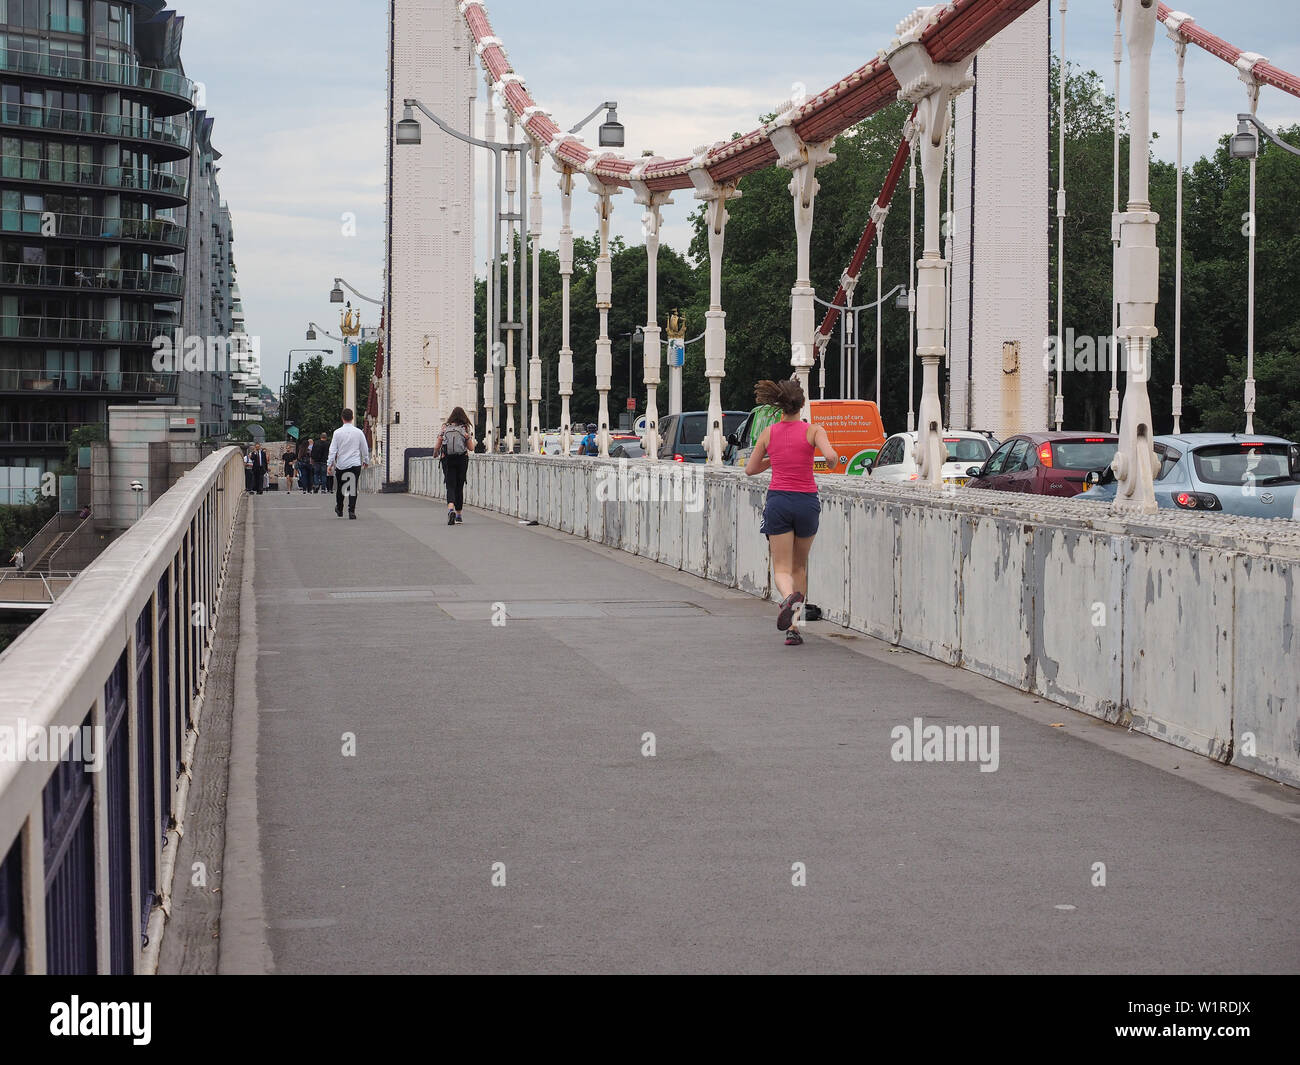 LONDON, UK - CIRCA JUNE 2019: Chelsey Bridge crossing River Thames - Stock Image